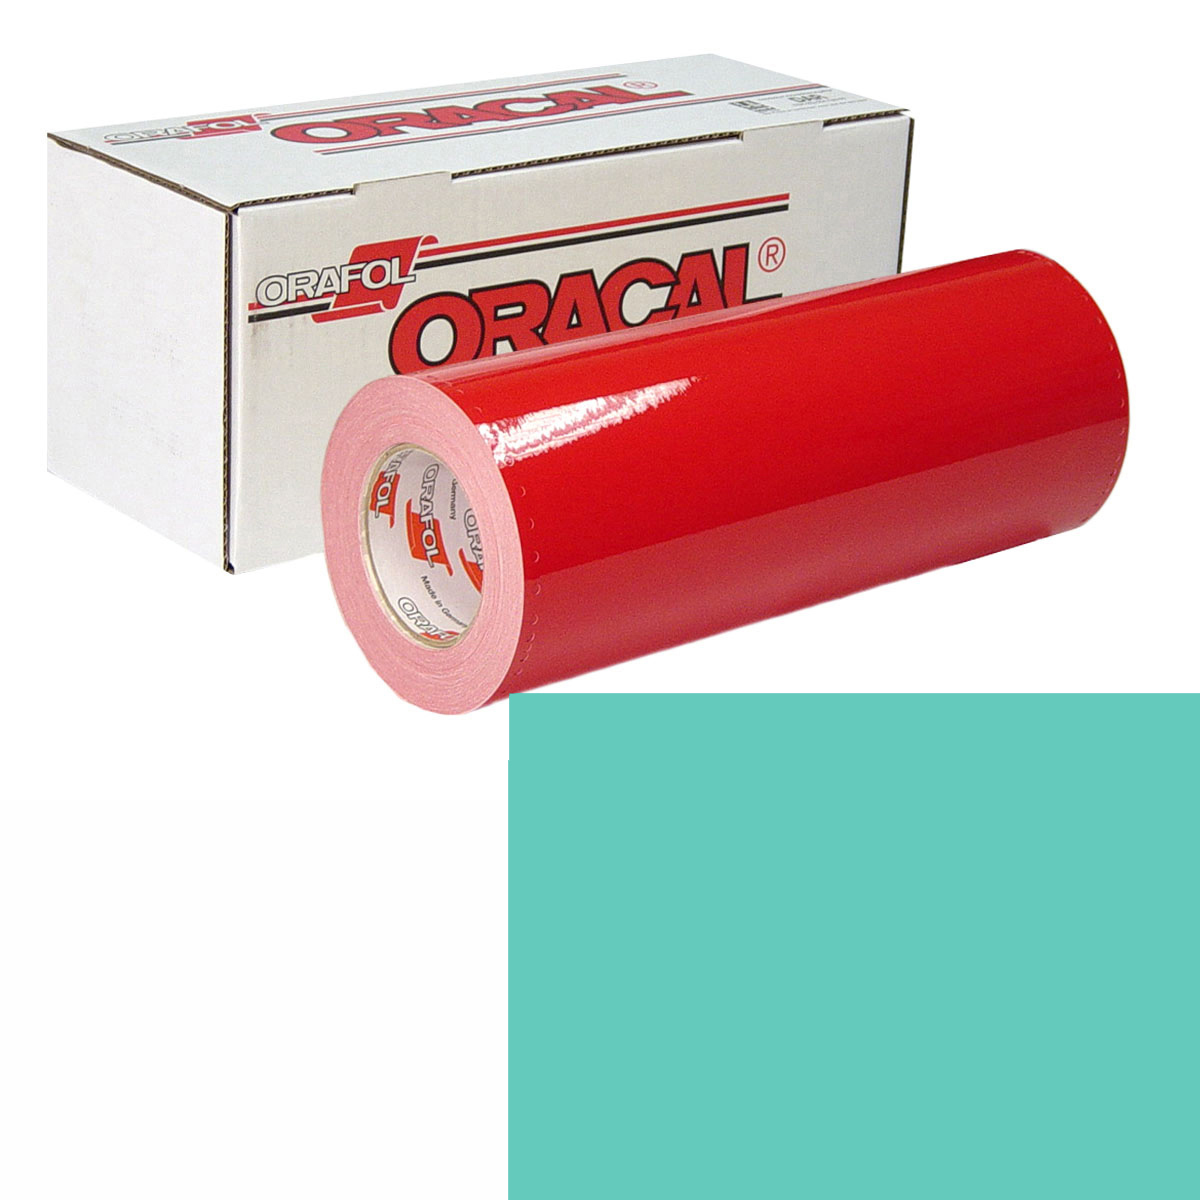 ORACAL 951 15in X 10yd 501 Mint Blue